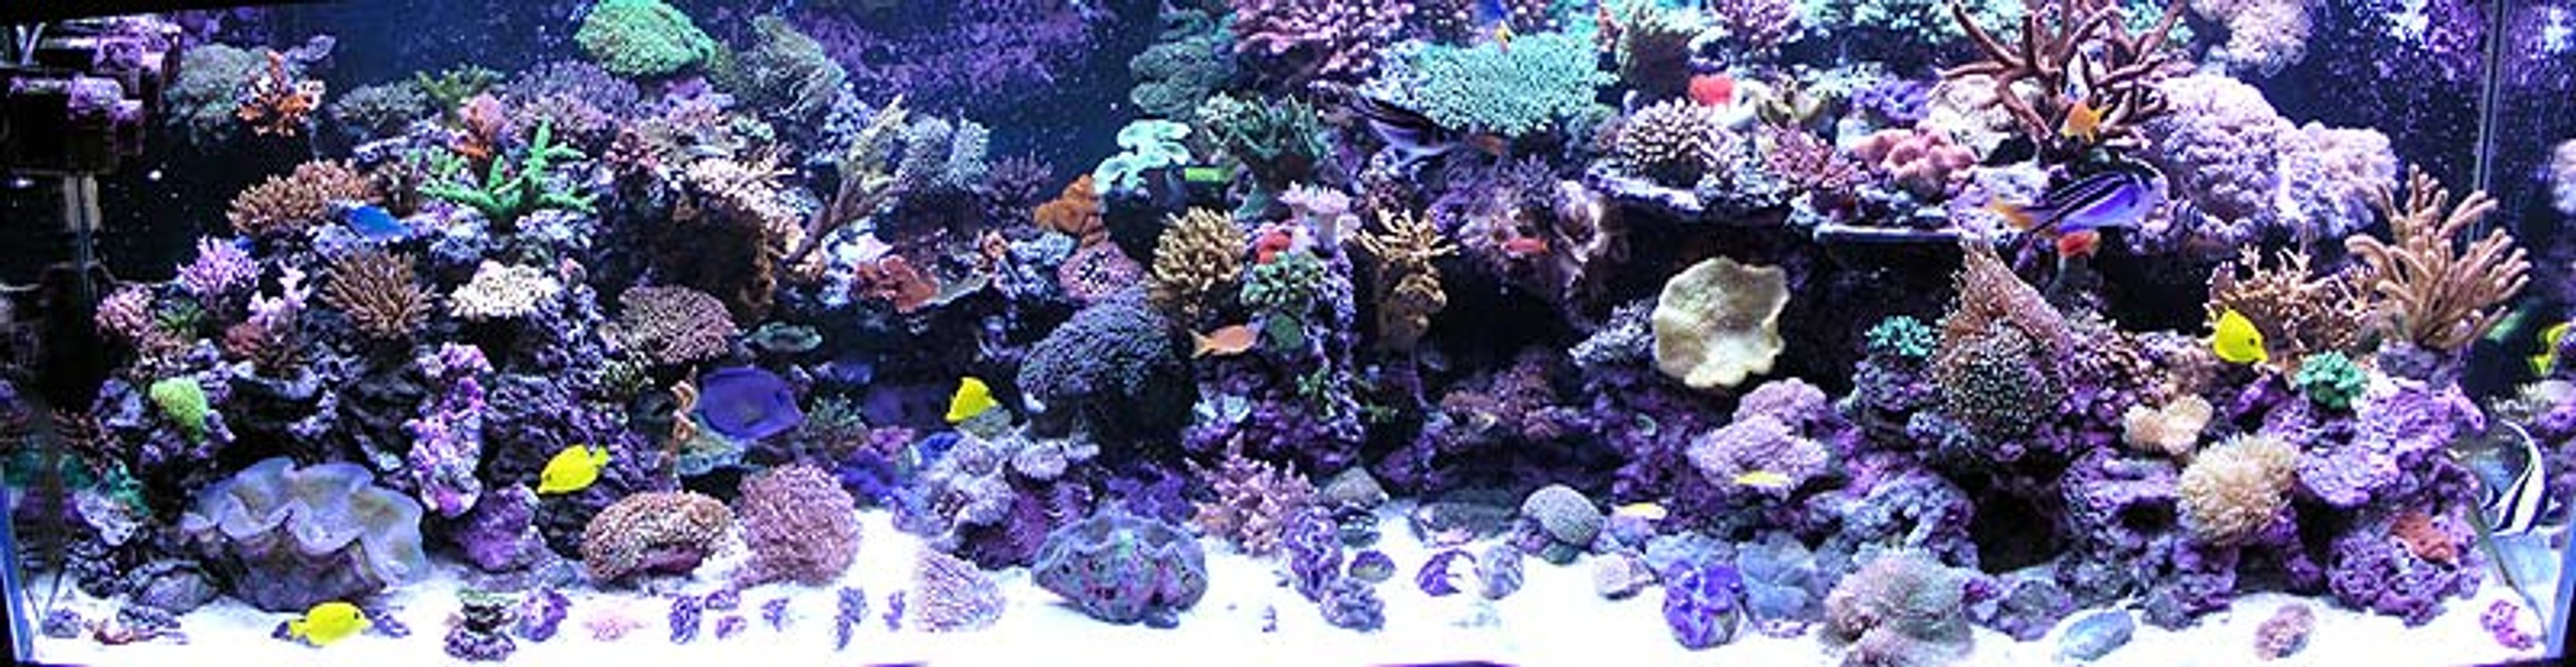 500 gallons reef tank (mostly live coral and fish) - Full reef tank pic. Over 100 coral and 50 fish